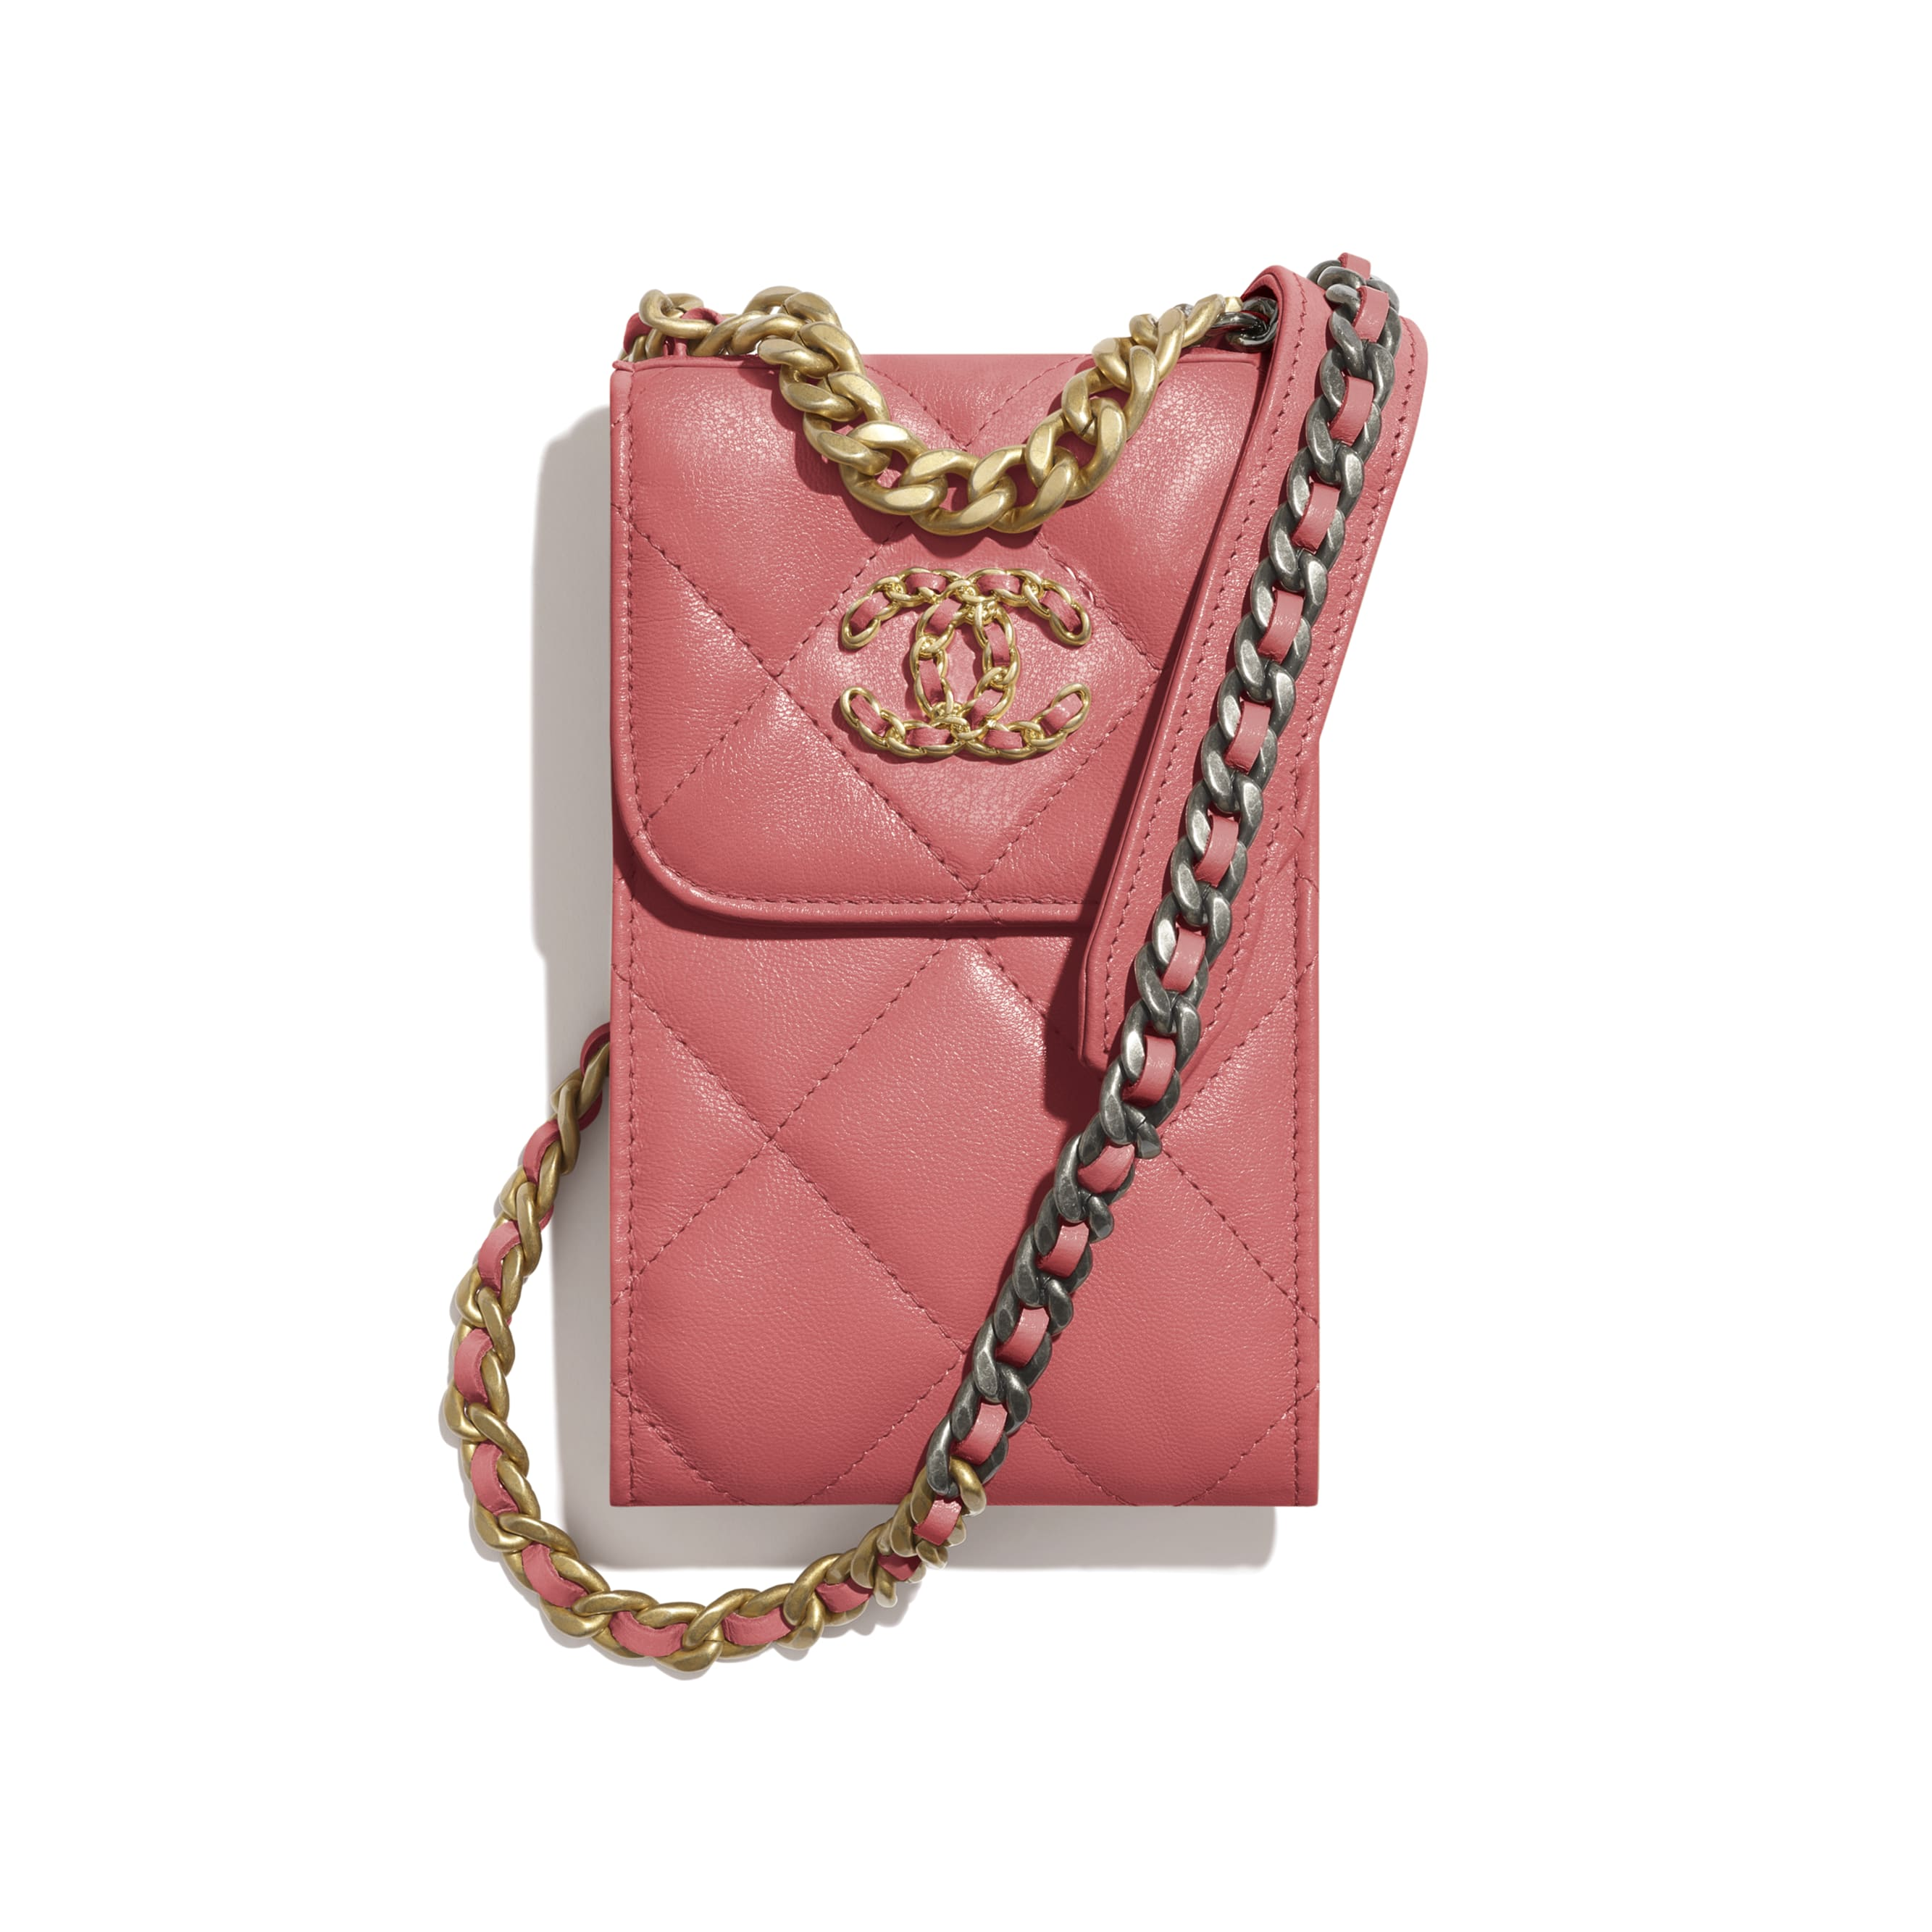 CHANEL 19 Phone Holder with Chain - Coral - Lambskin, Gold-Tone, Silver-Tone & Ruthenium-Finish Metal - CHANEL - Default view - see standard sized version